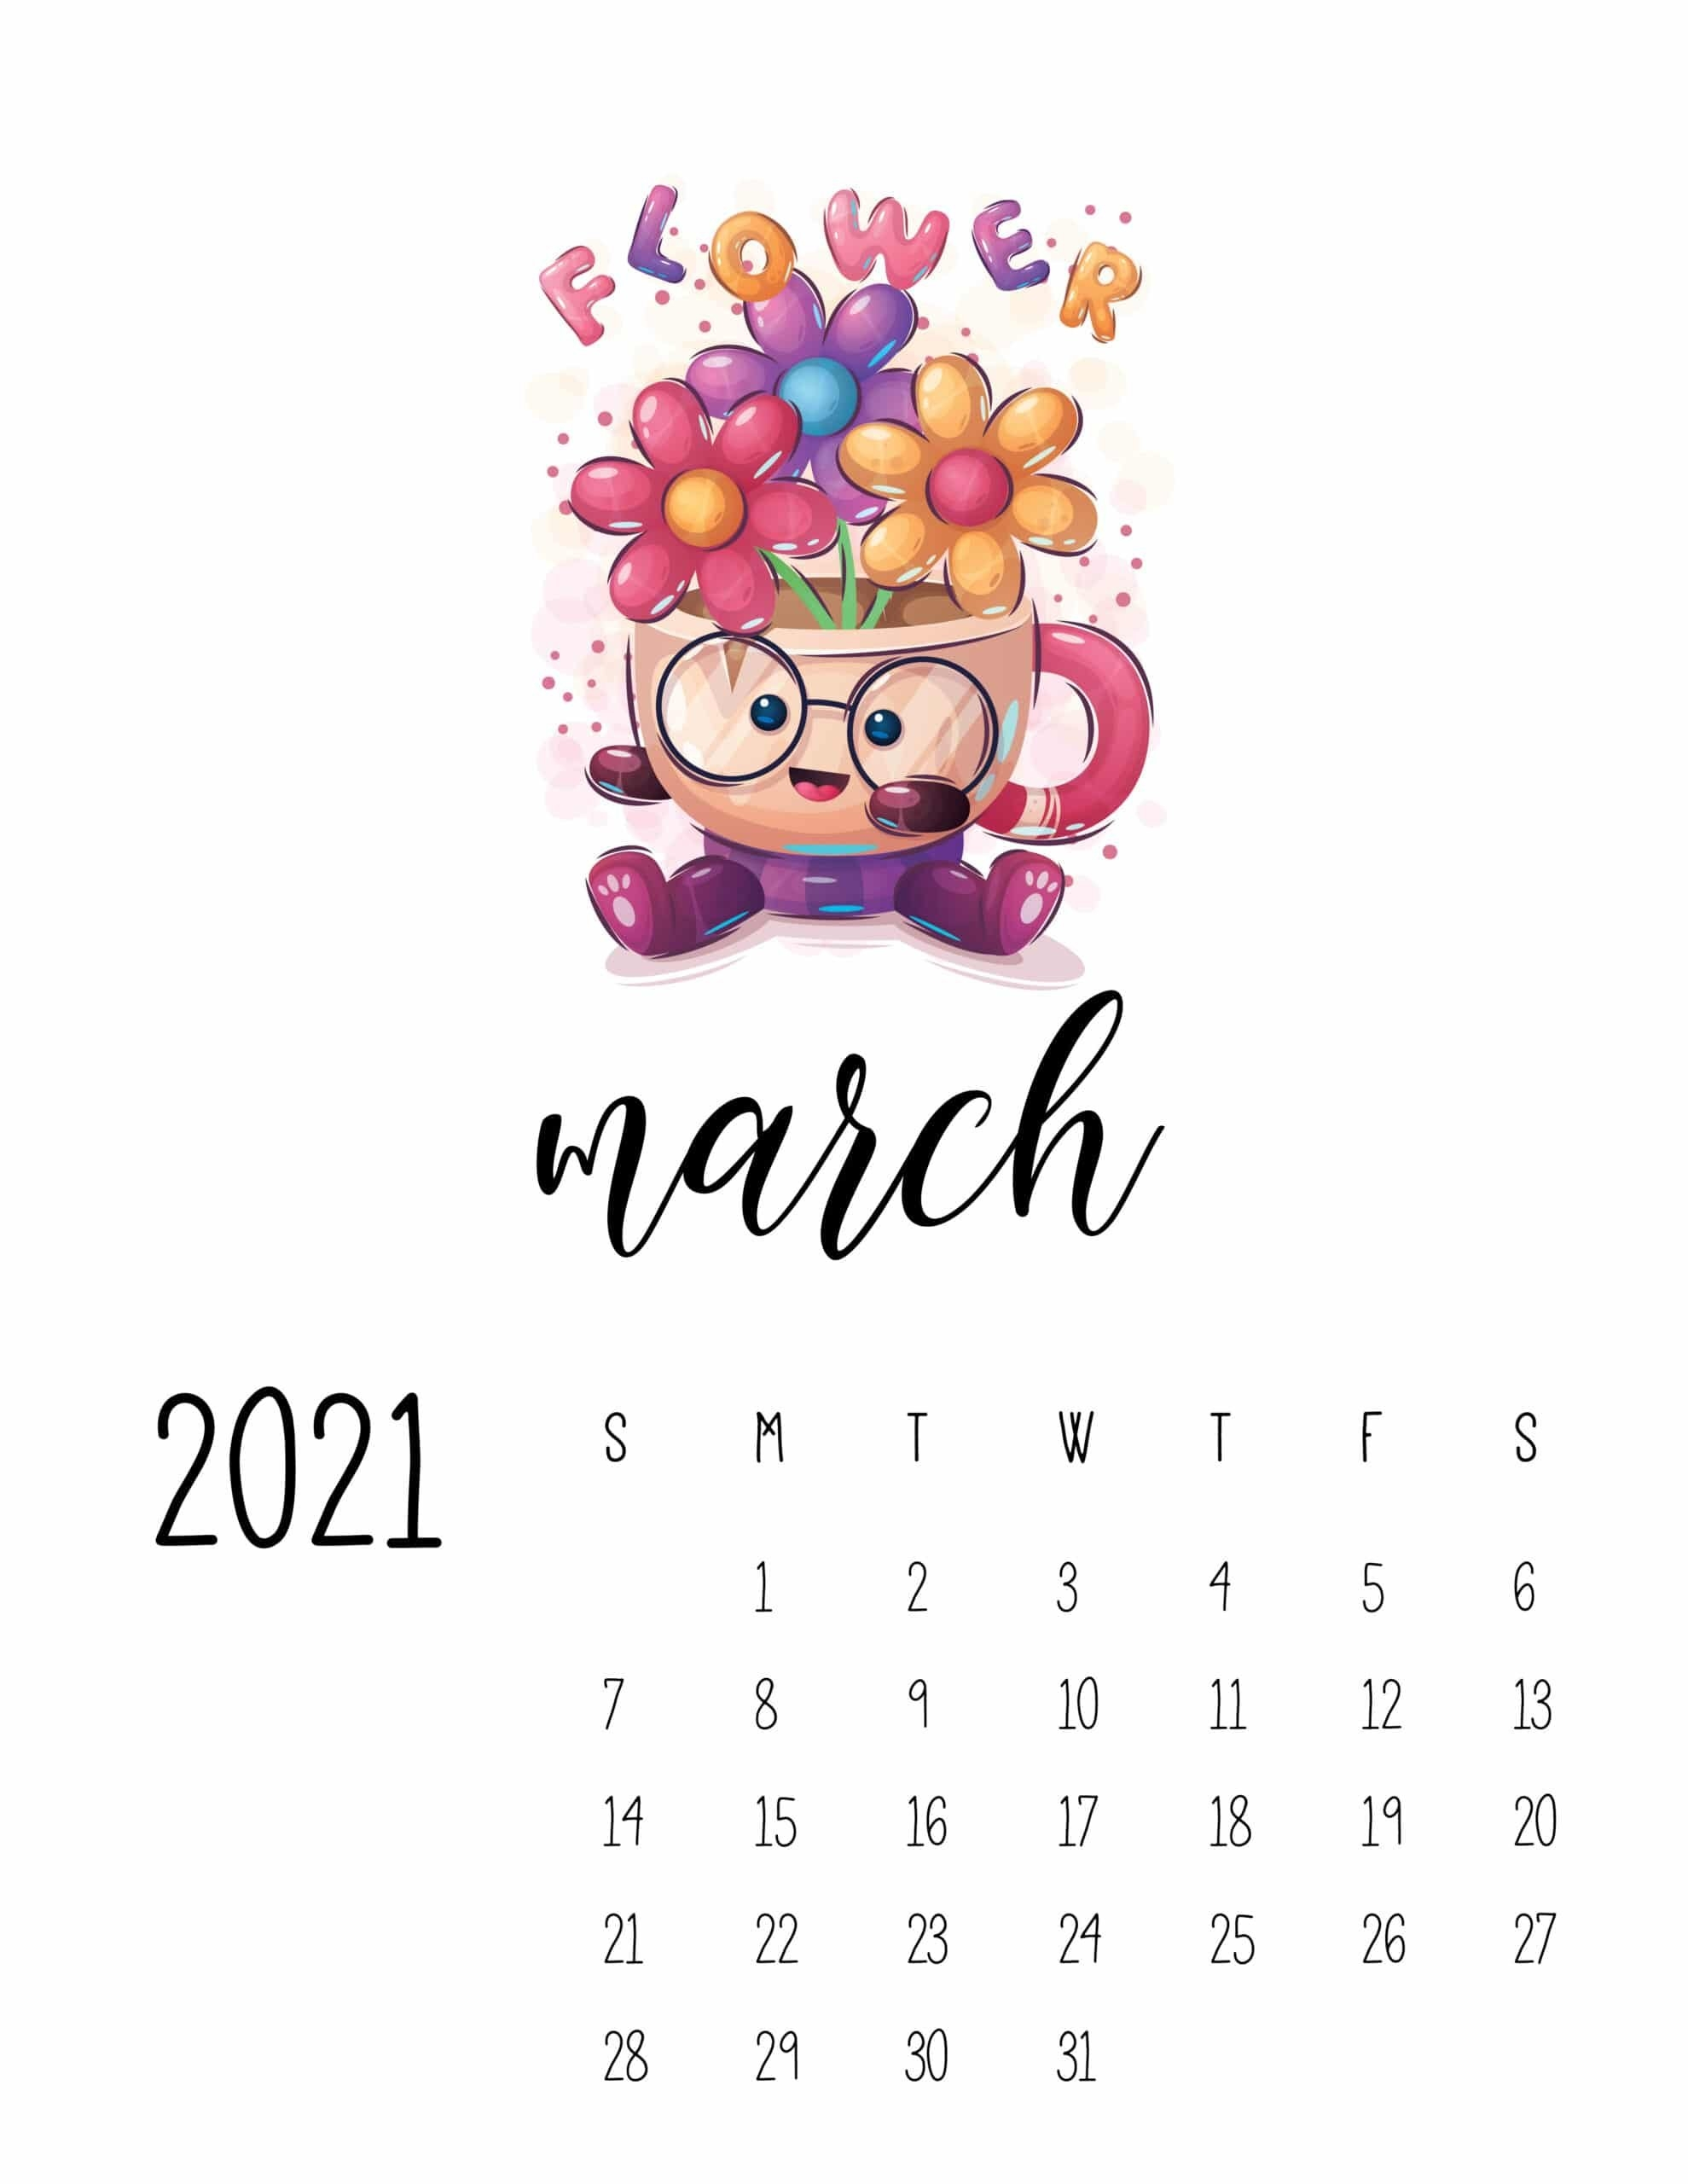 Cutest Happy Animals Calendar 2021 - World Of Printables with regard to What Year Calendar Matches 2021 Graphics